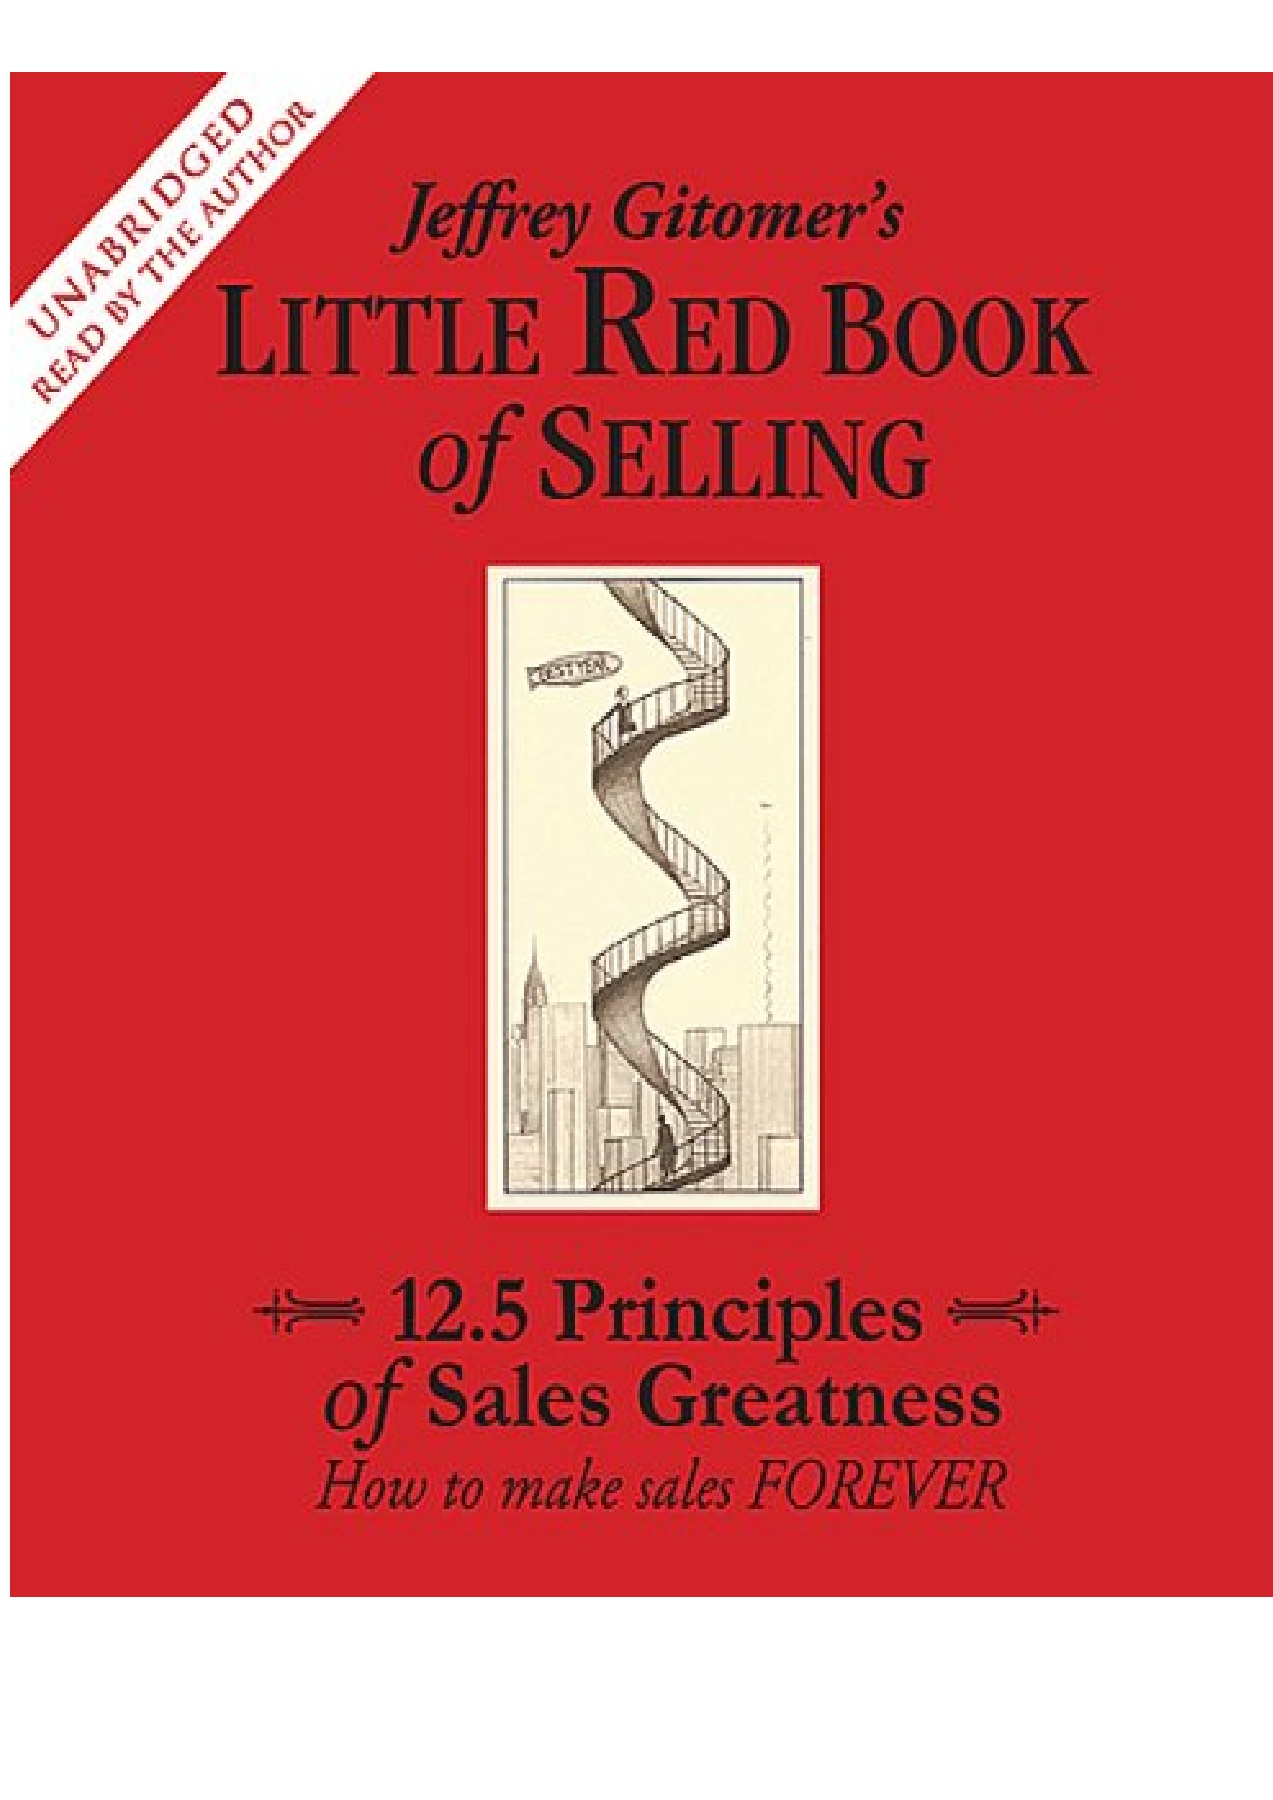 The Little Red Book Of Selling PDF Free Download